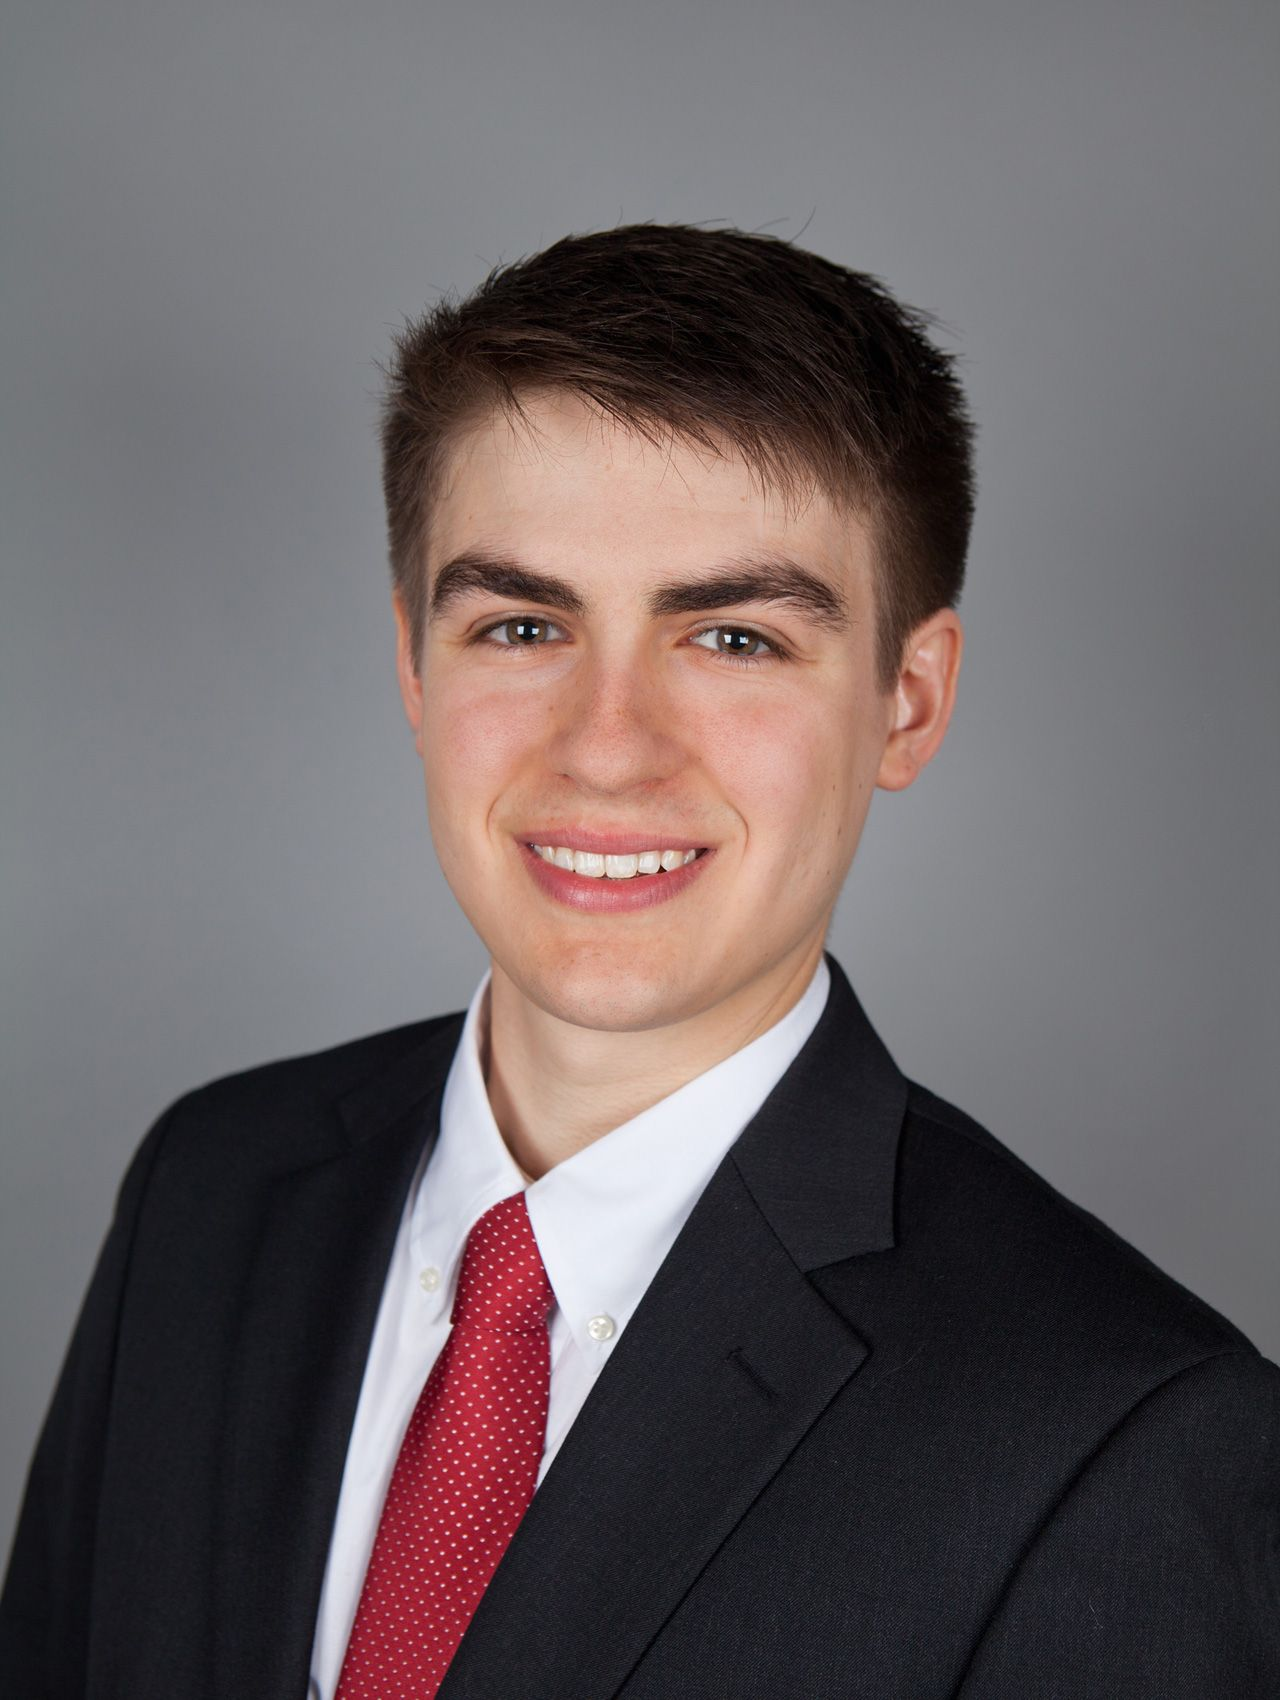 Headshot for Medical School Application